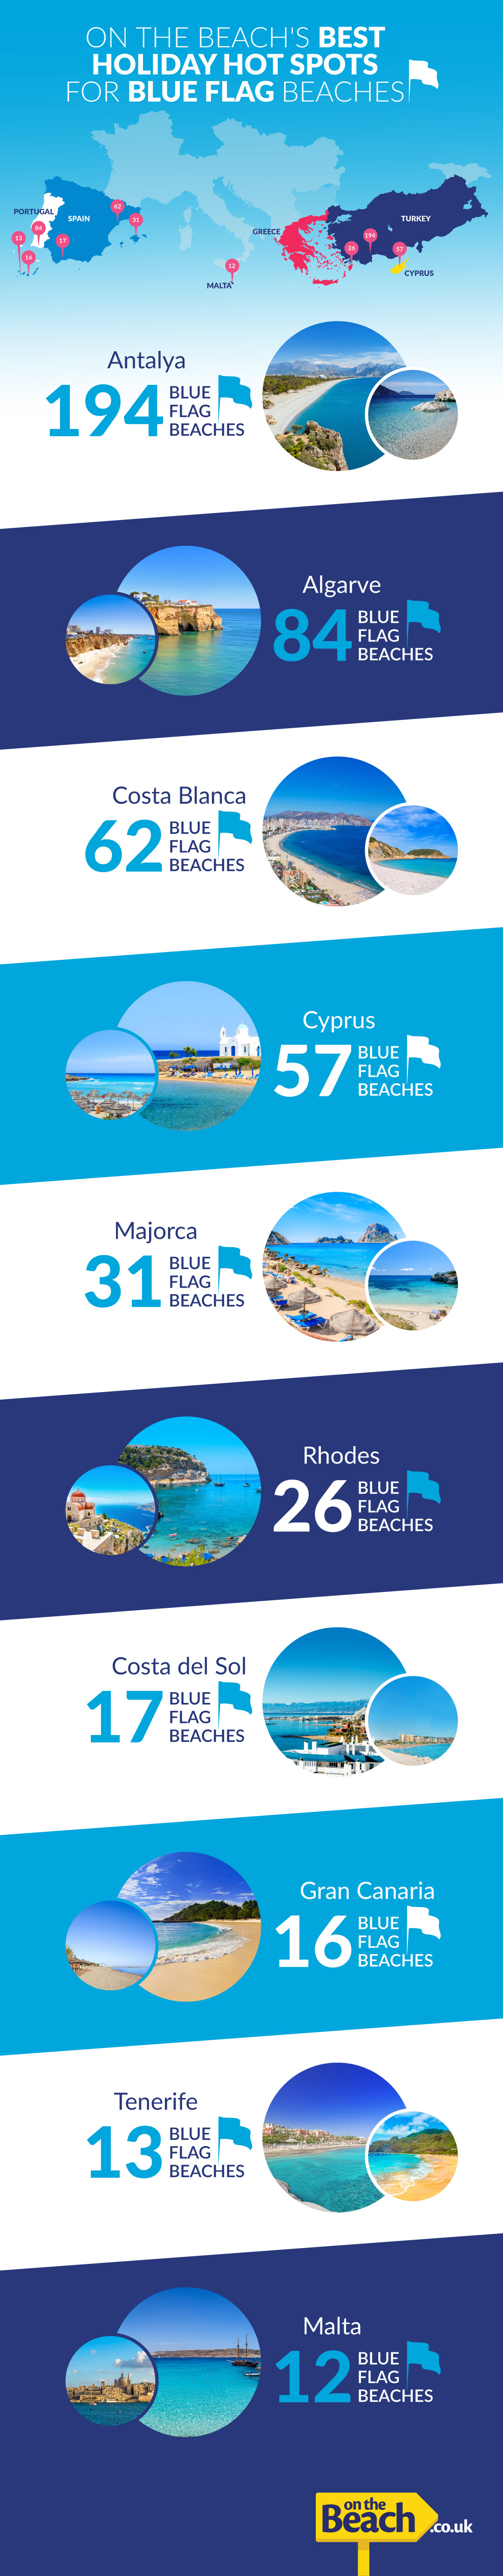 Everything you need to know about Blue Flag beaches